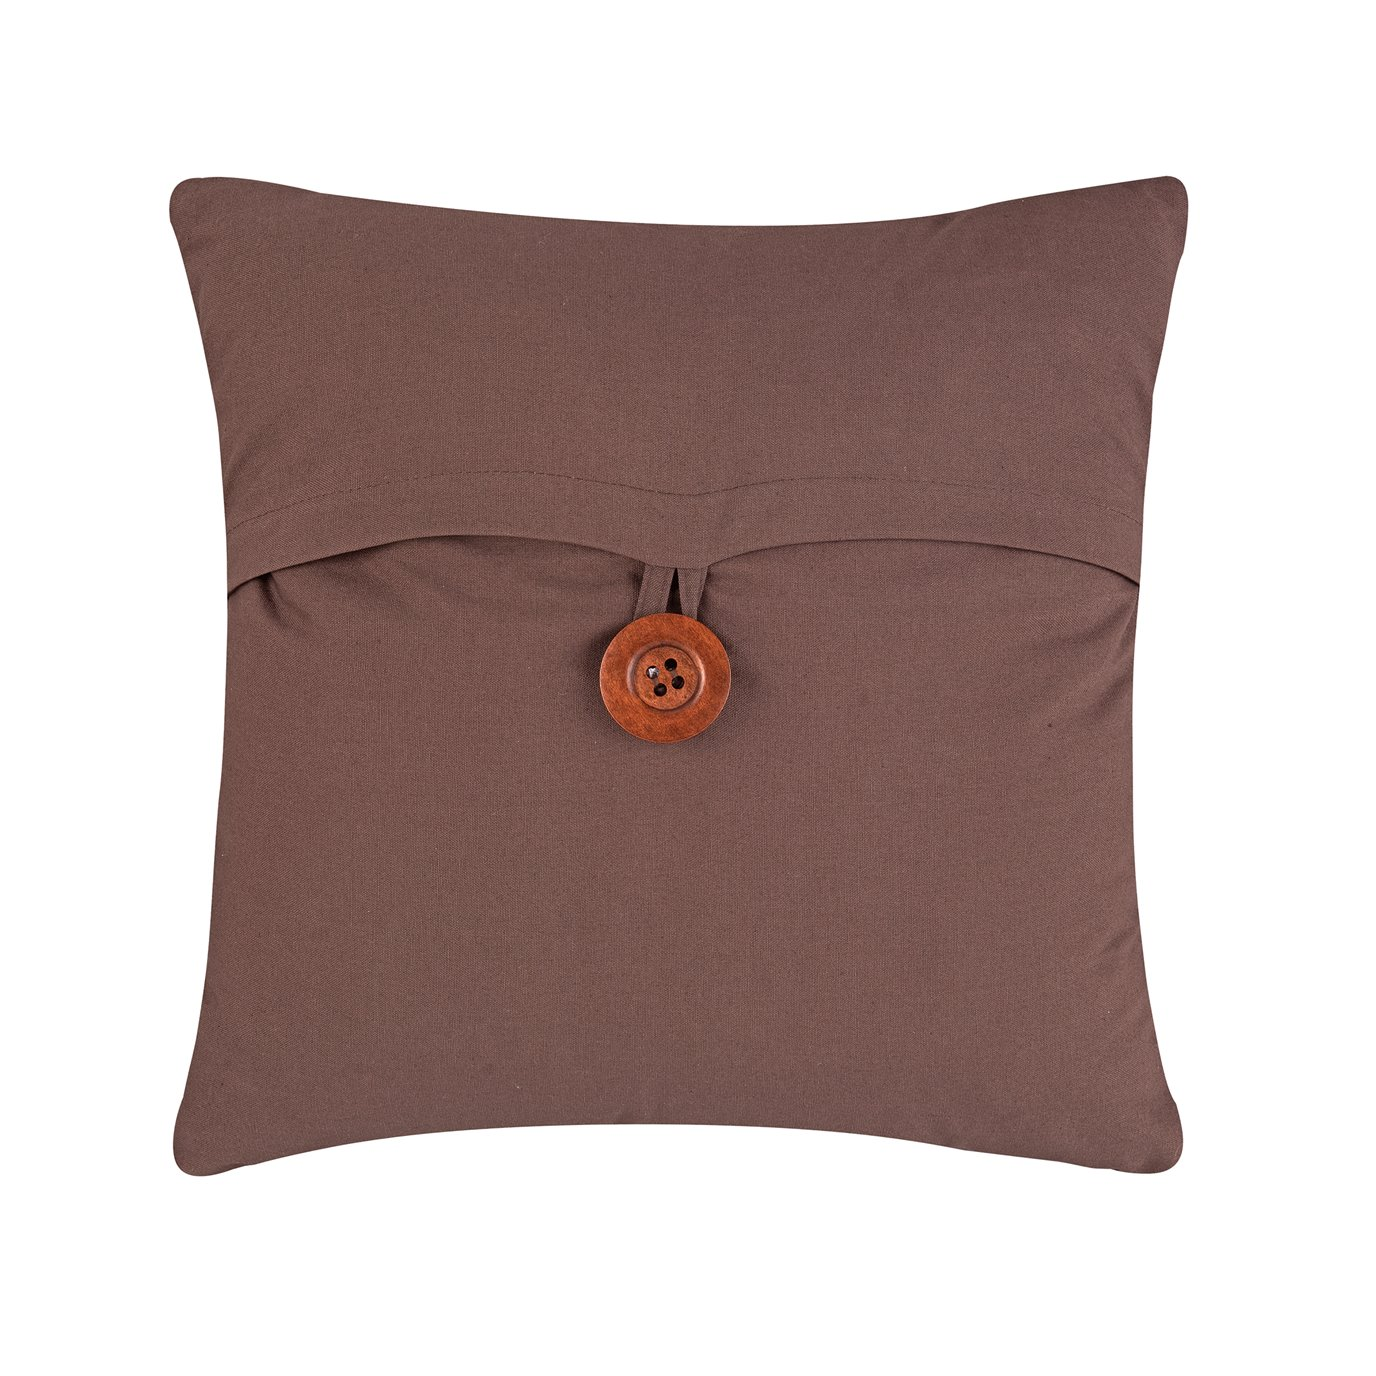 Brown Feather Down Envelope Pillow